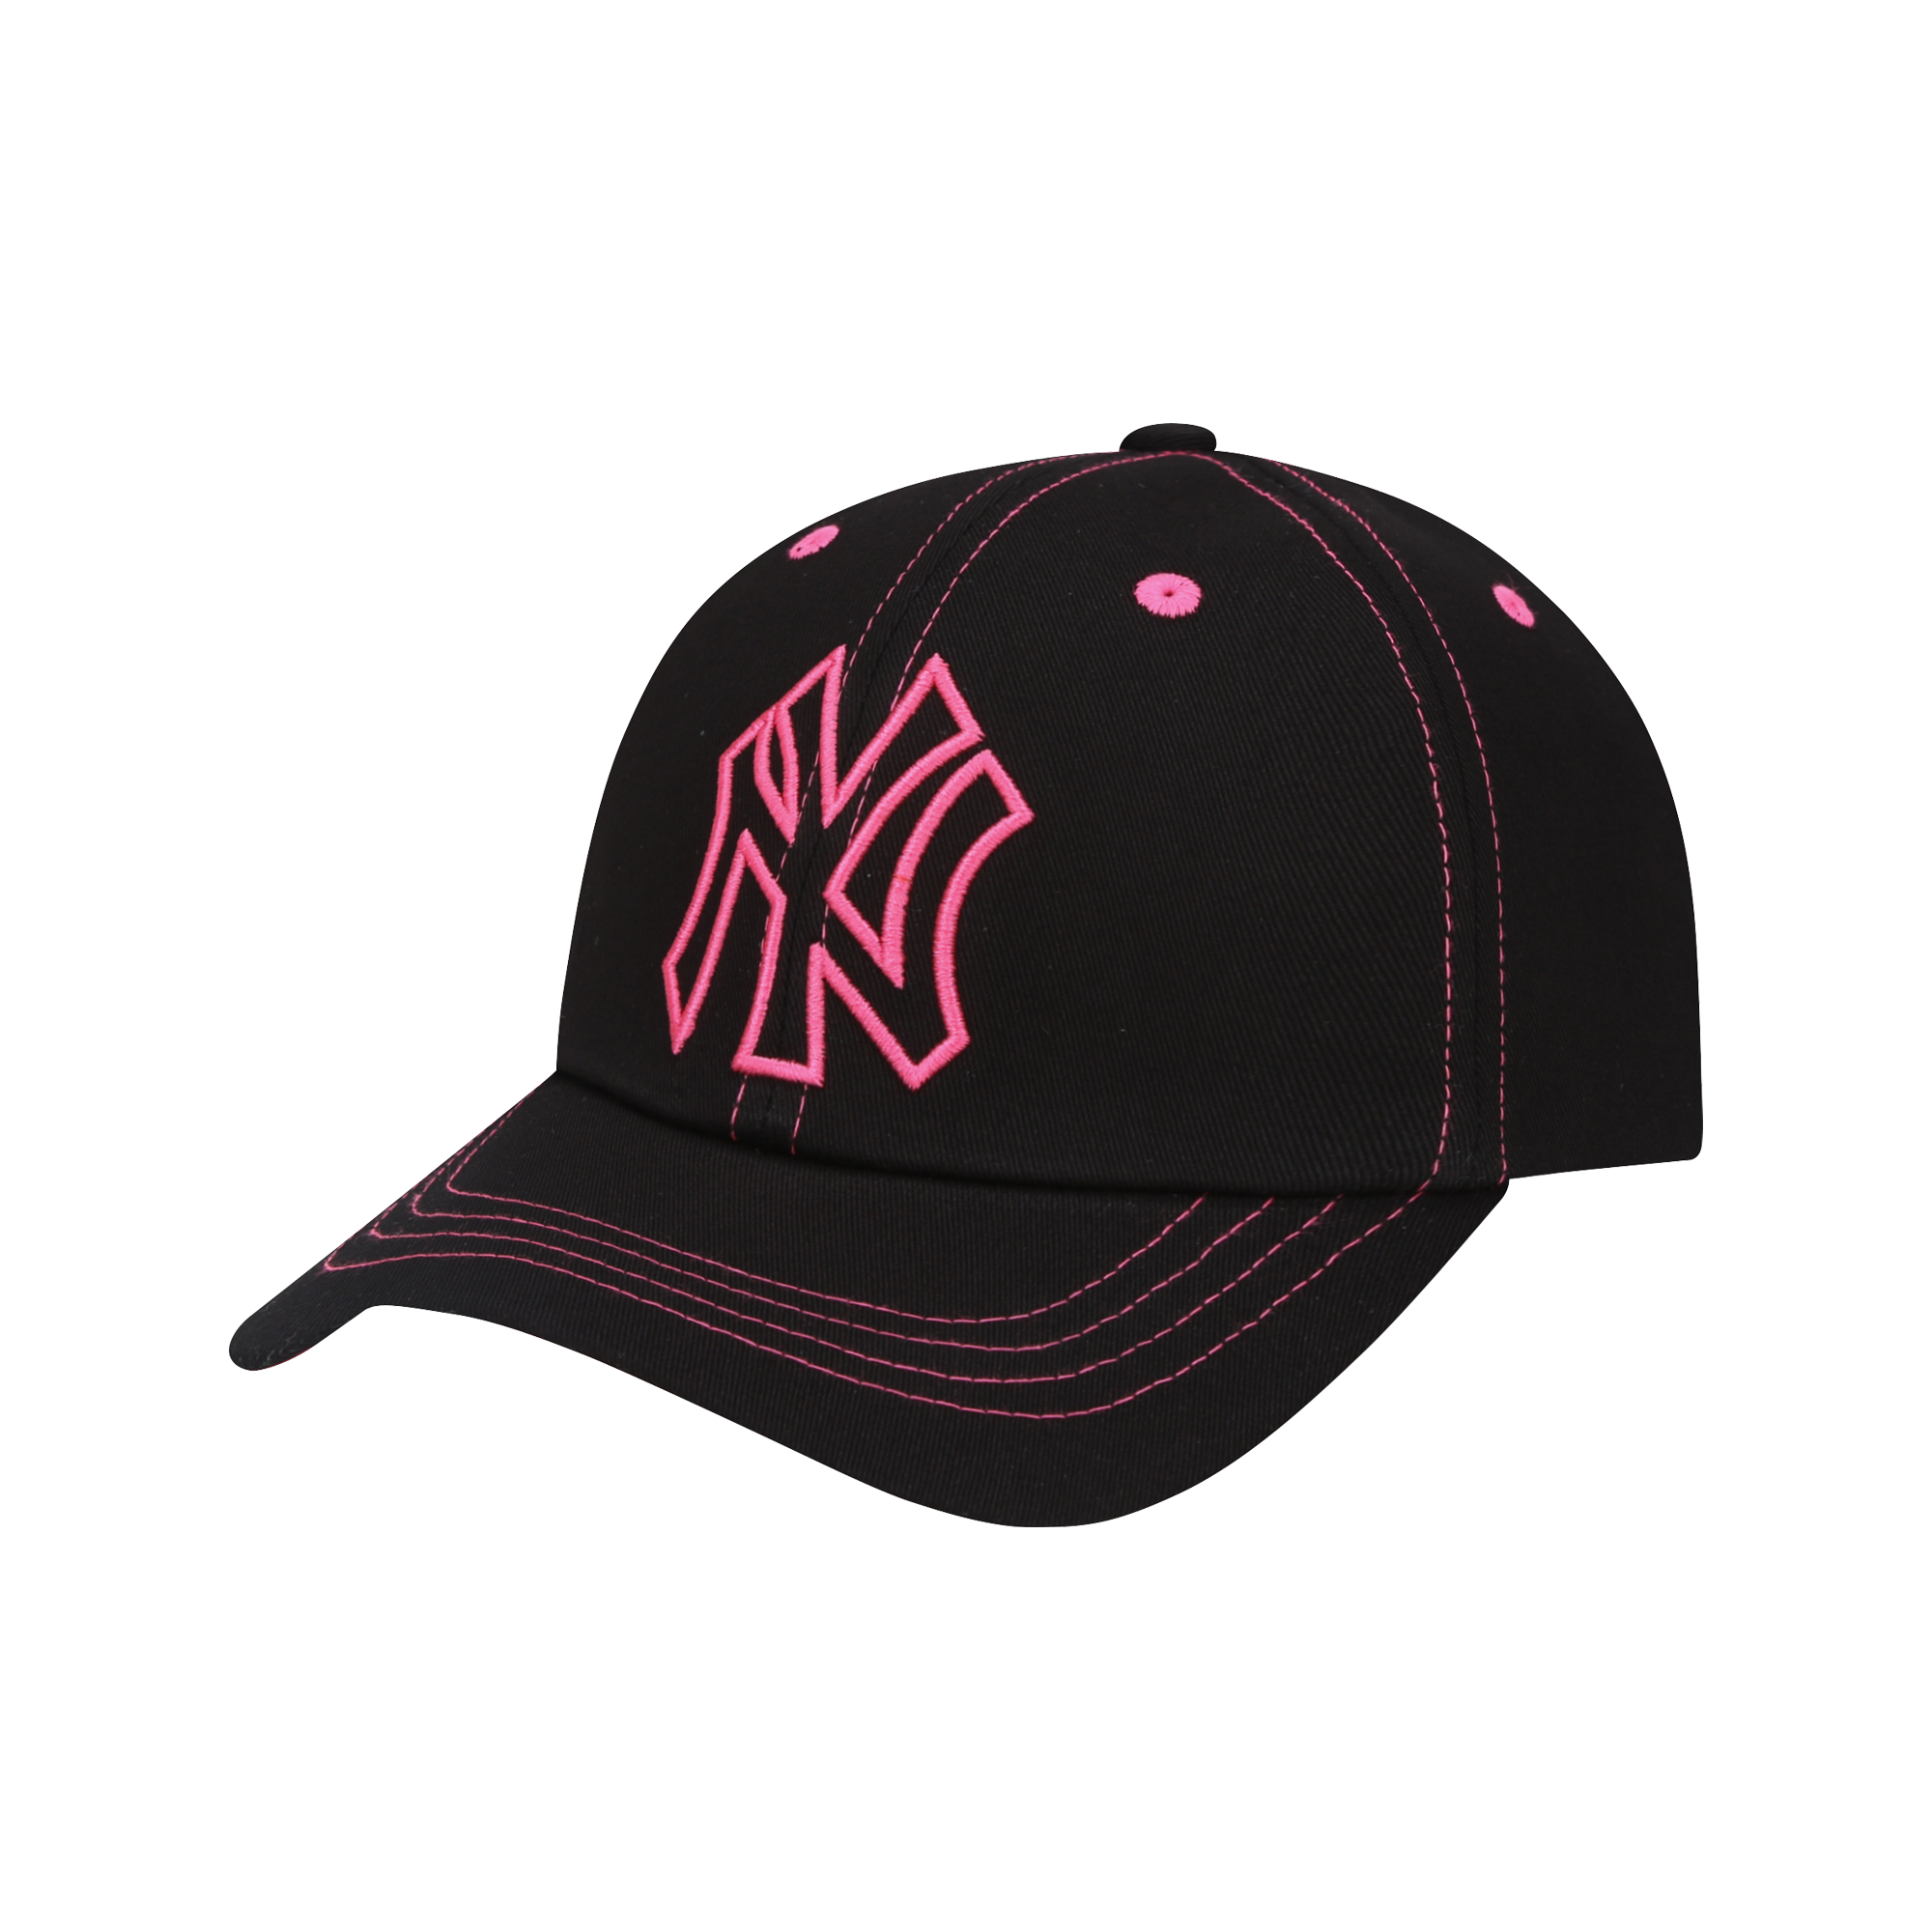 NEW YORK YANKEES RACING BALL CAP